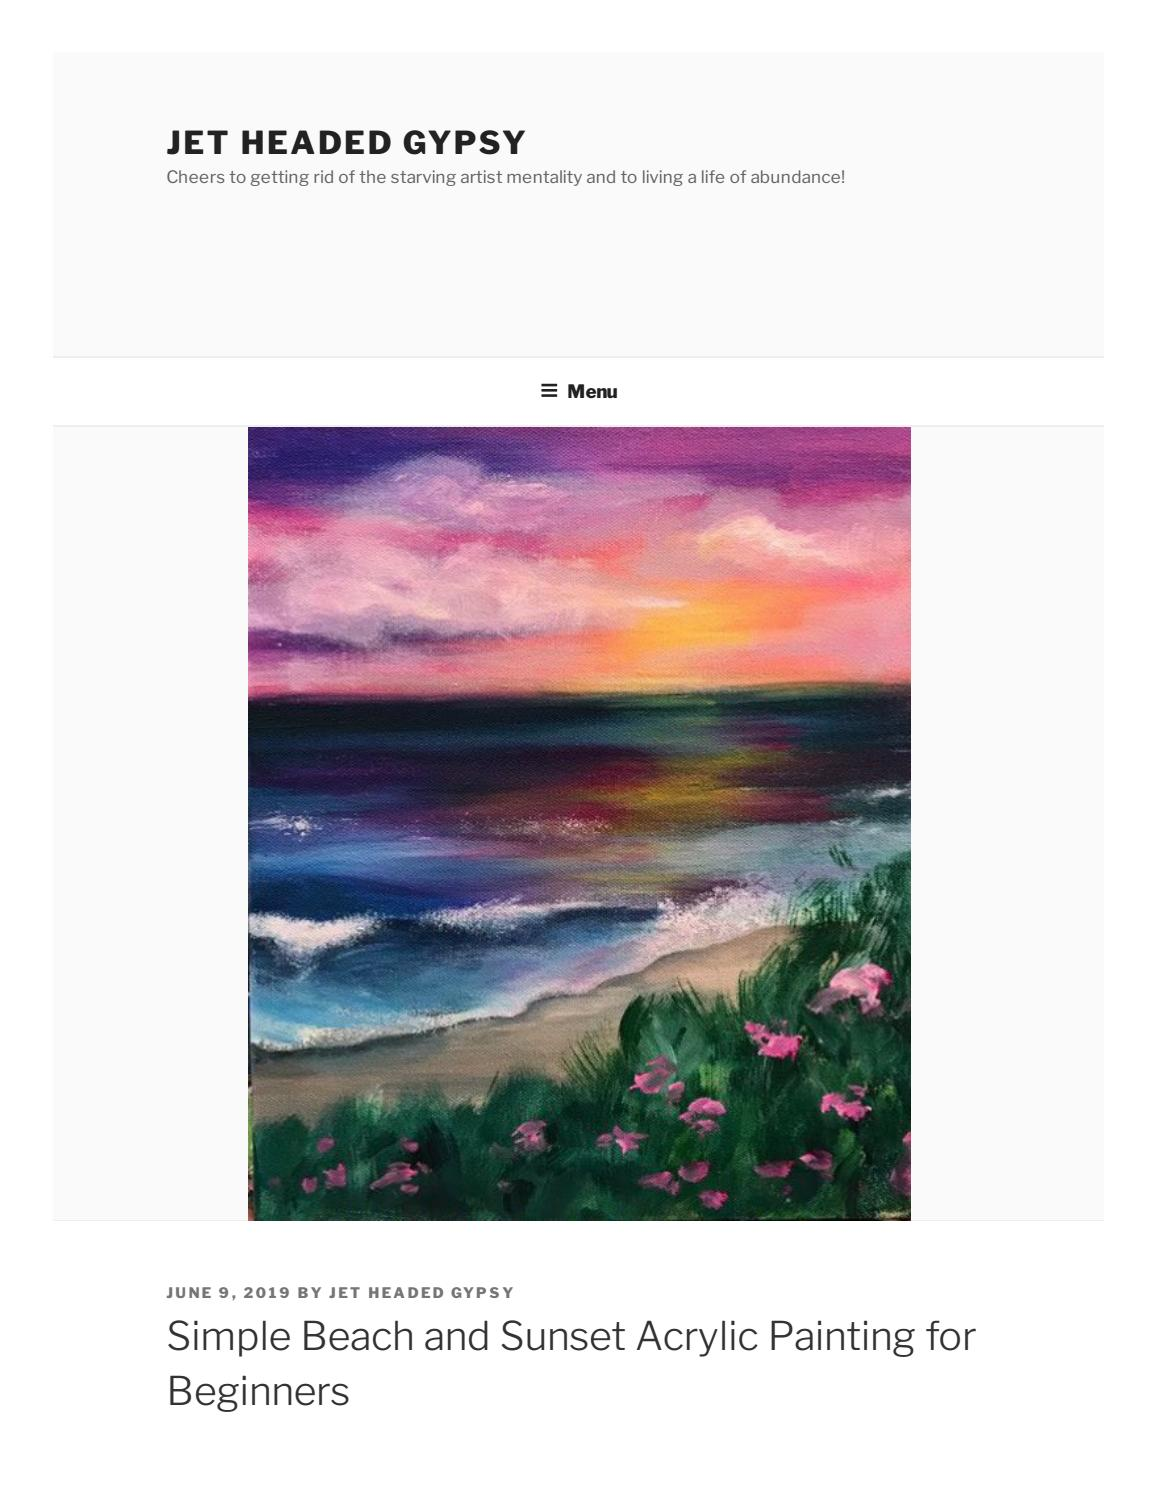 Simple Beach And Sunset Acrylic Painting For Beginners By Jet Headed Gypsy Issuu